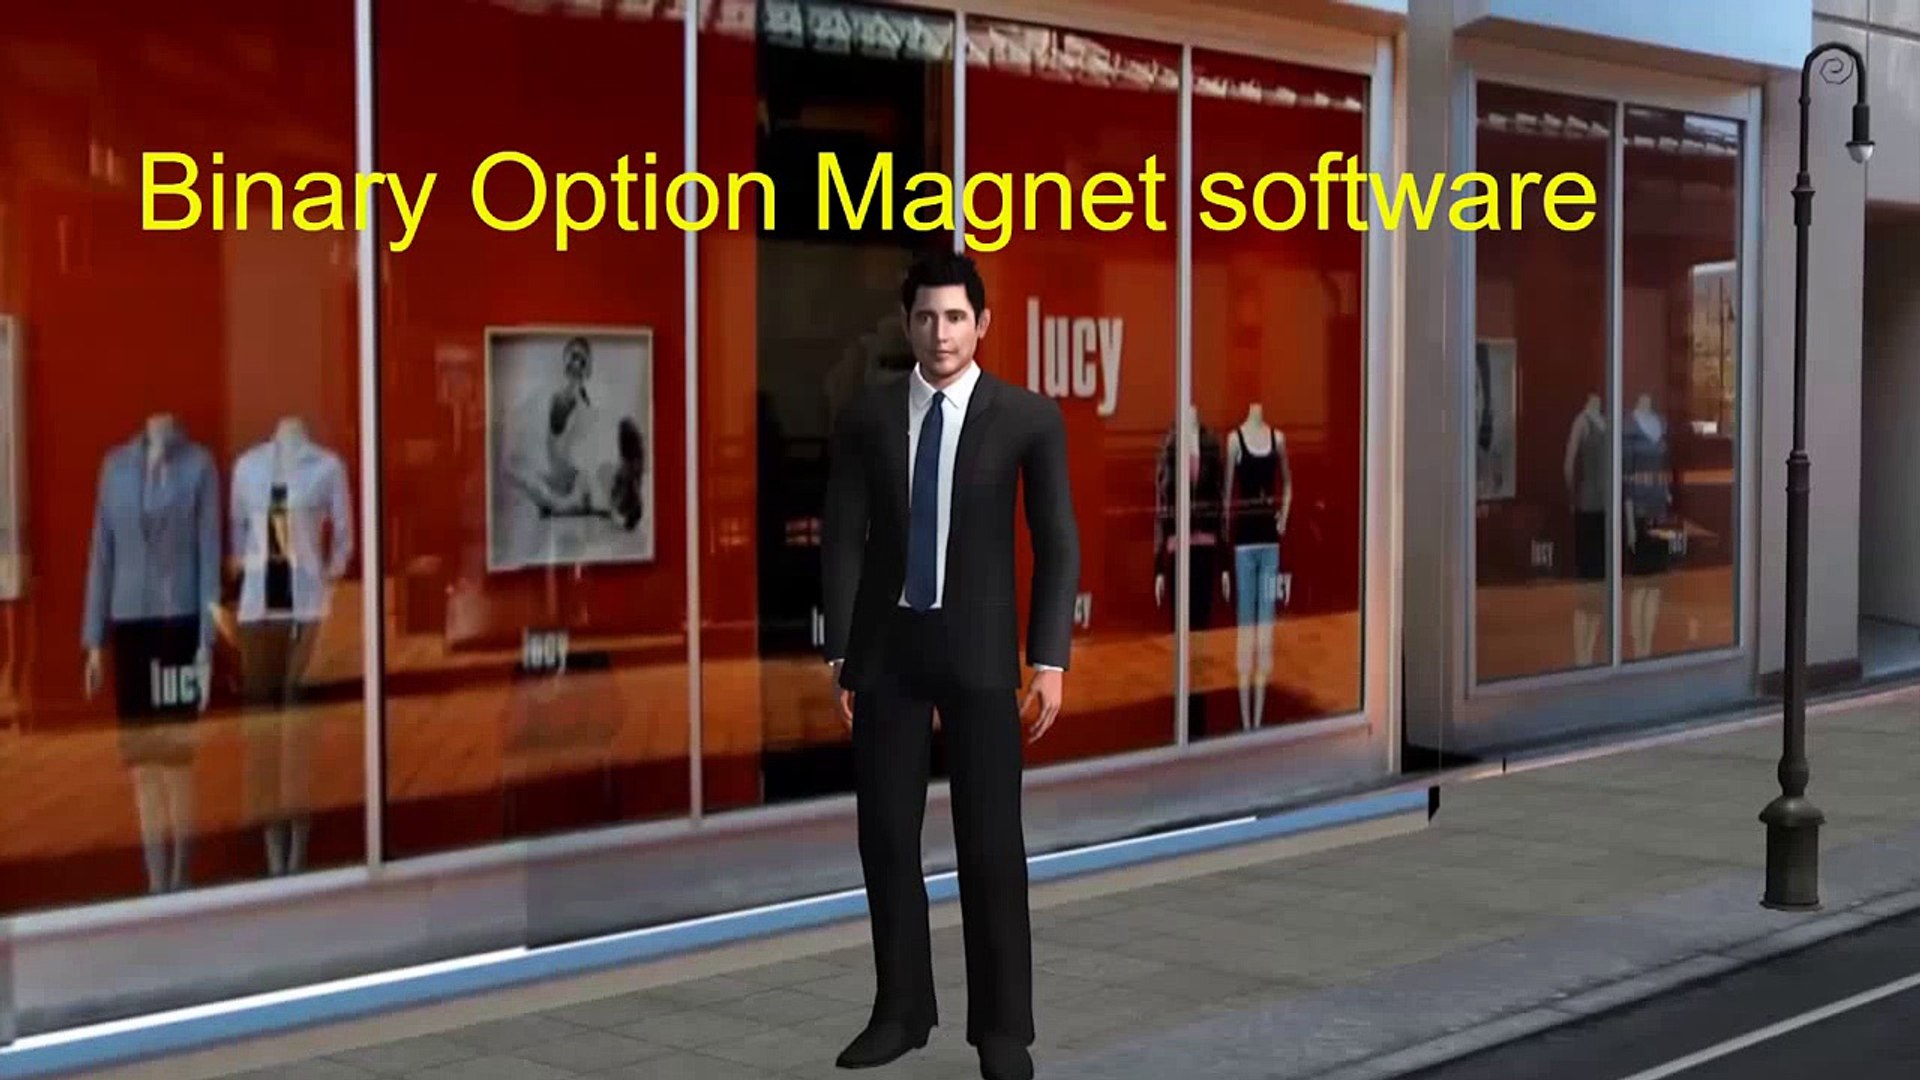 Binary options magnet software single manning betting shop